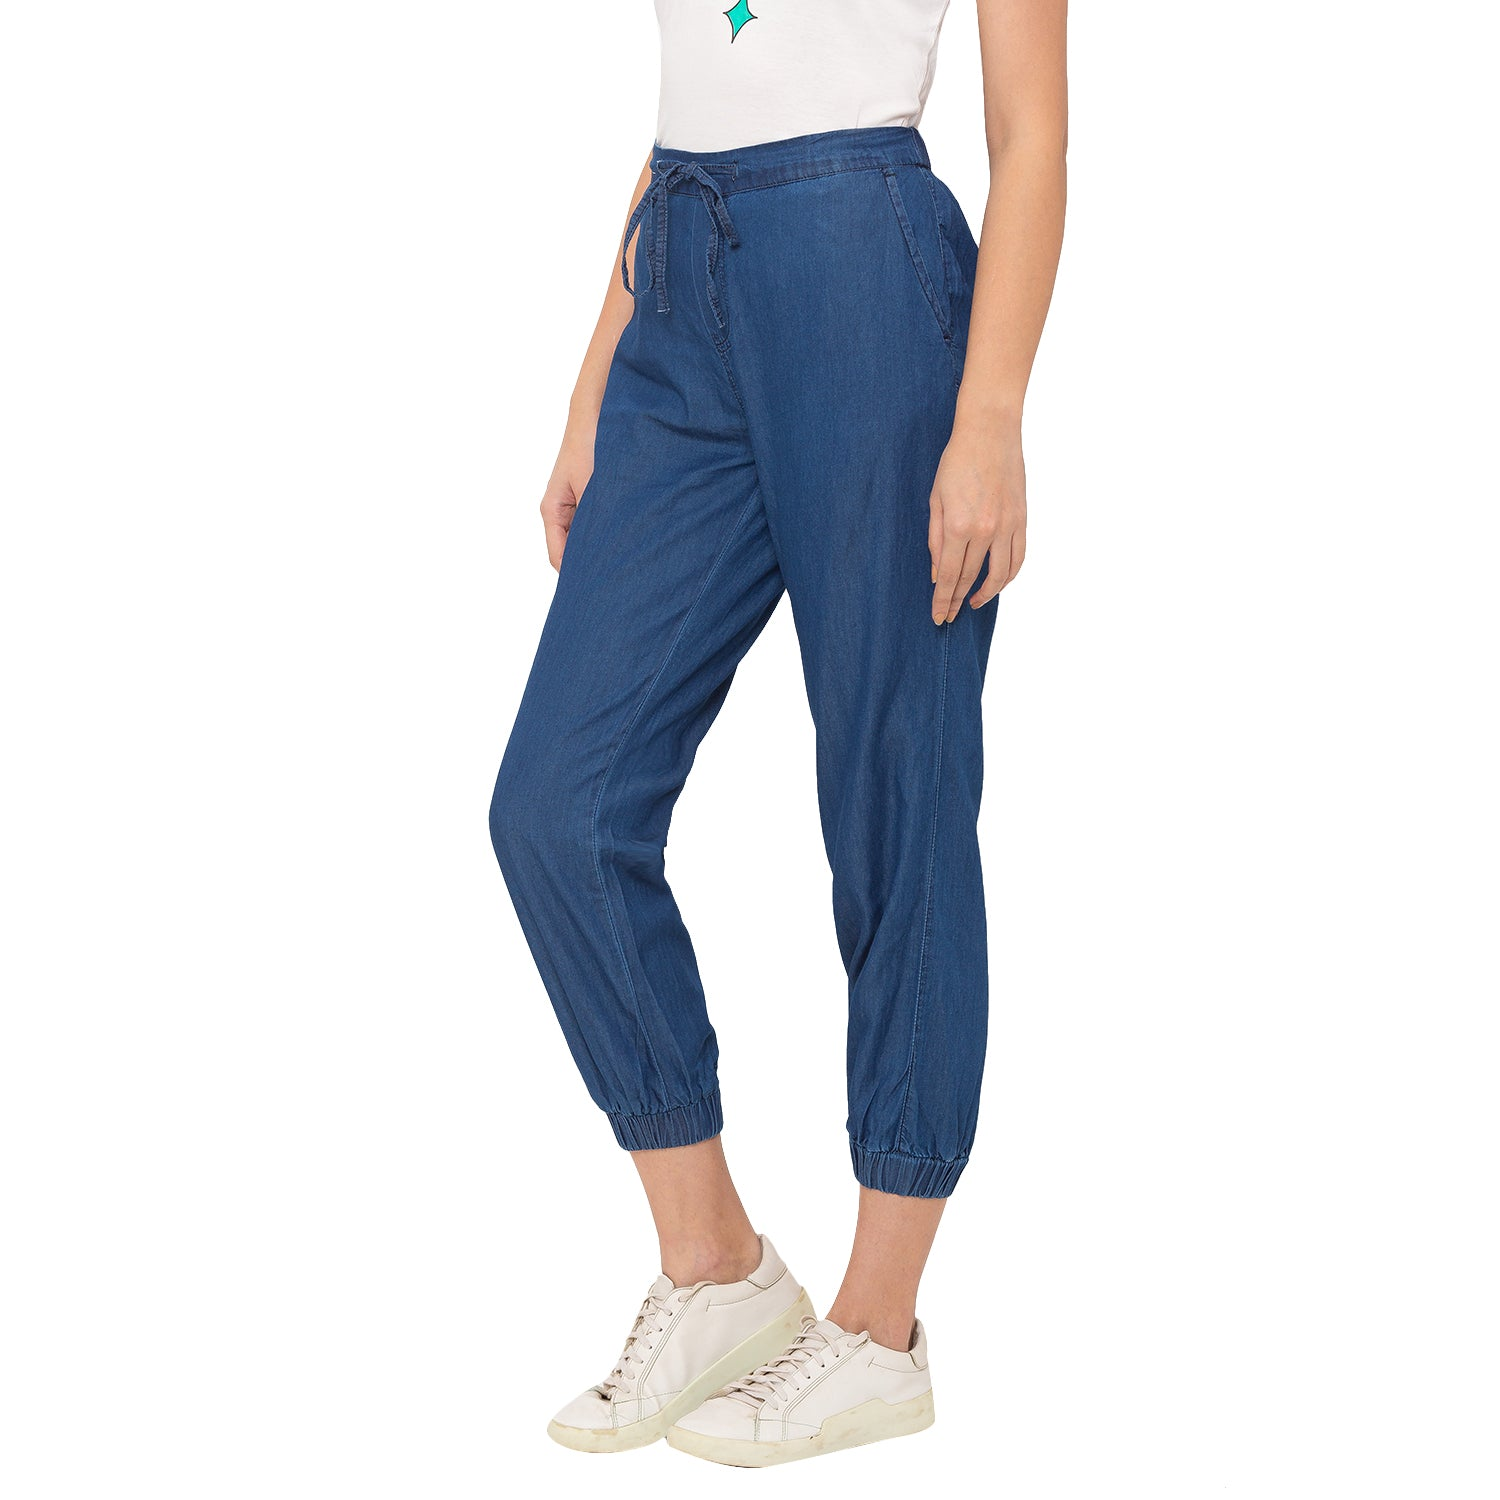 Globus Blue Solid Jeans-2